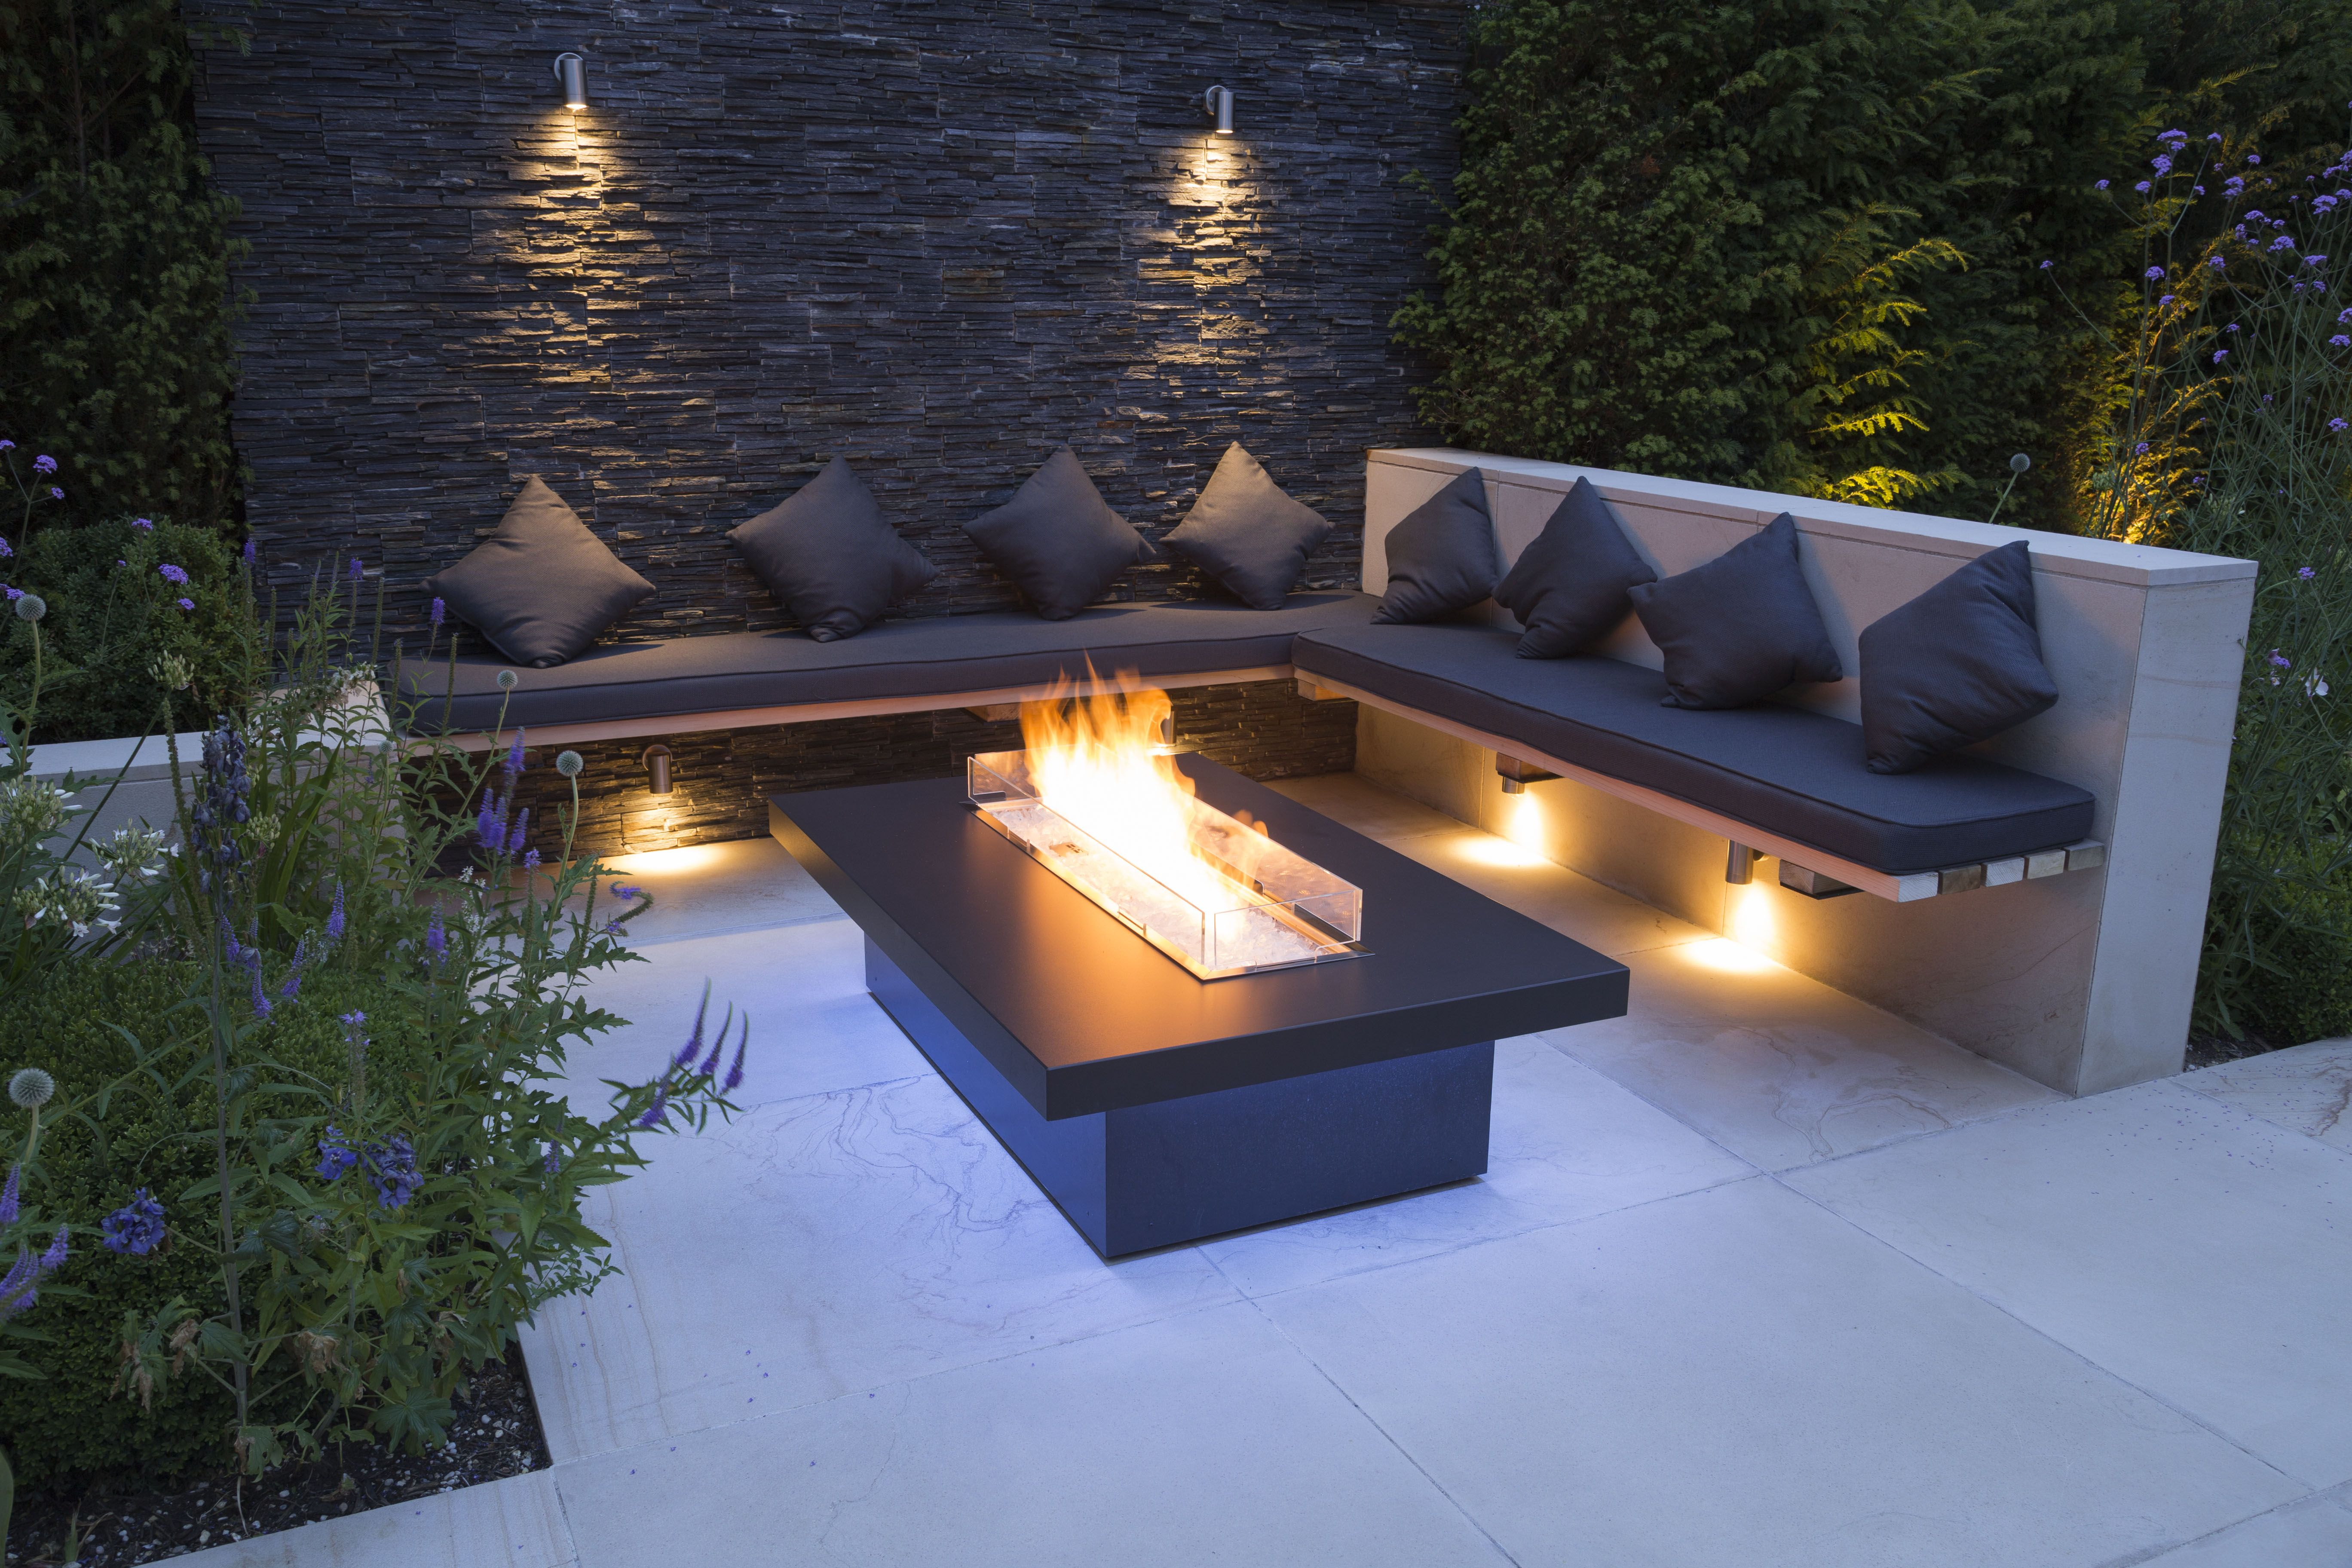 f805117dfd900fd328269597a3975f98 Top Result 50 Awesome Outdoor Fire Features Gallery 2018 Jdt4